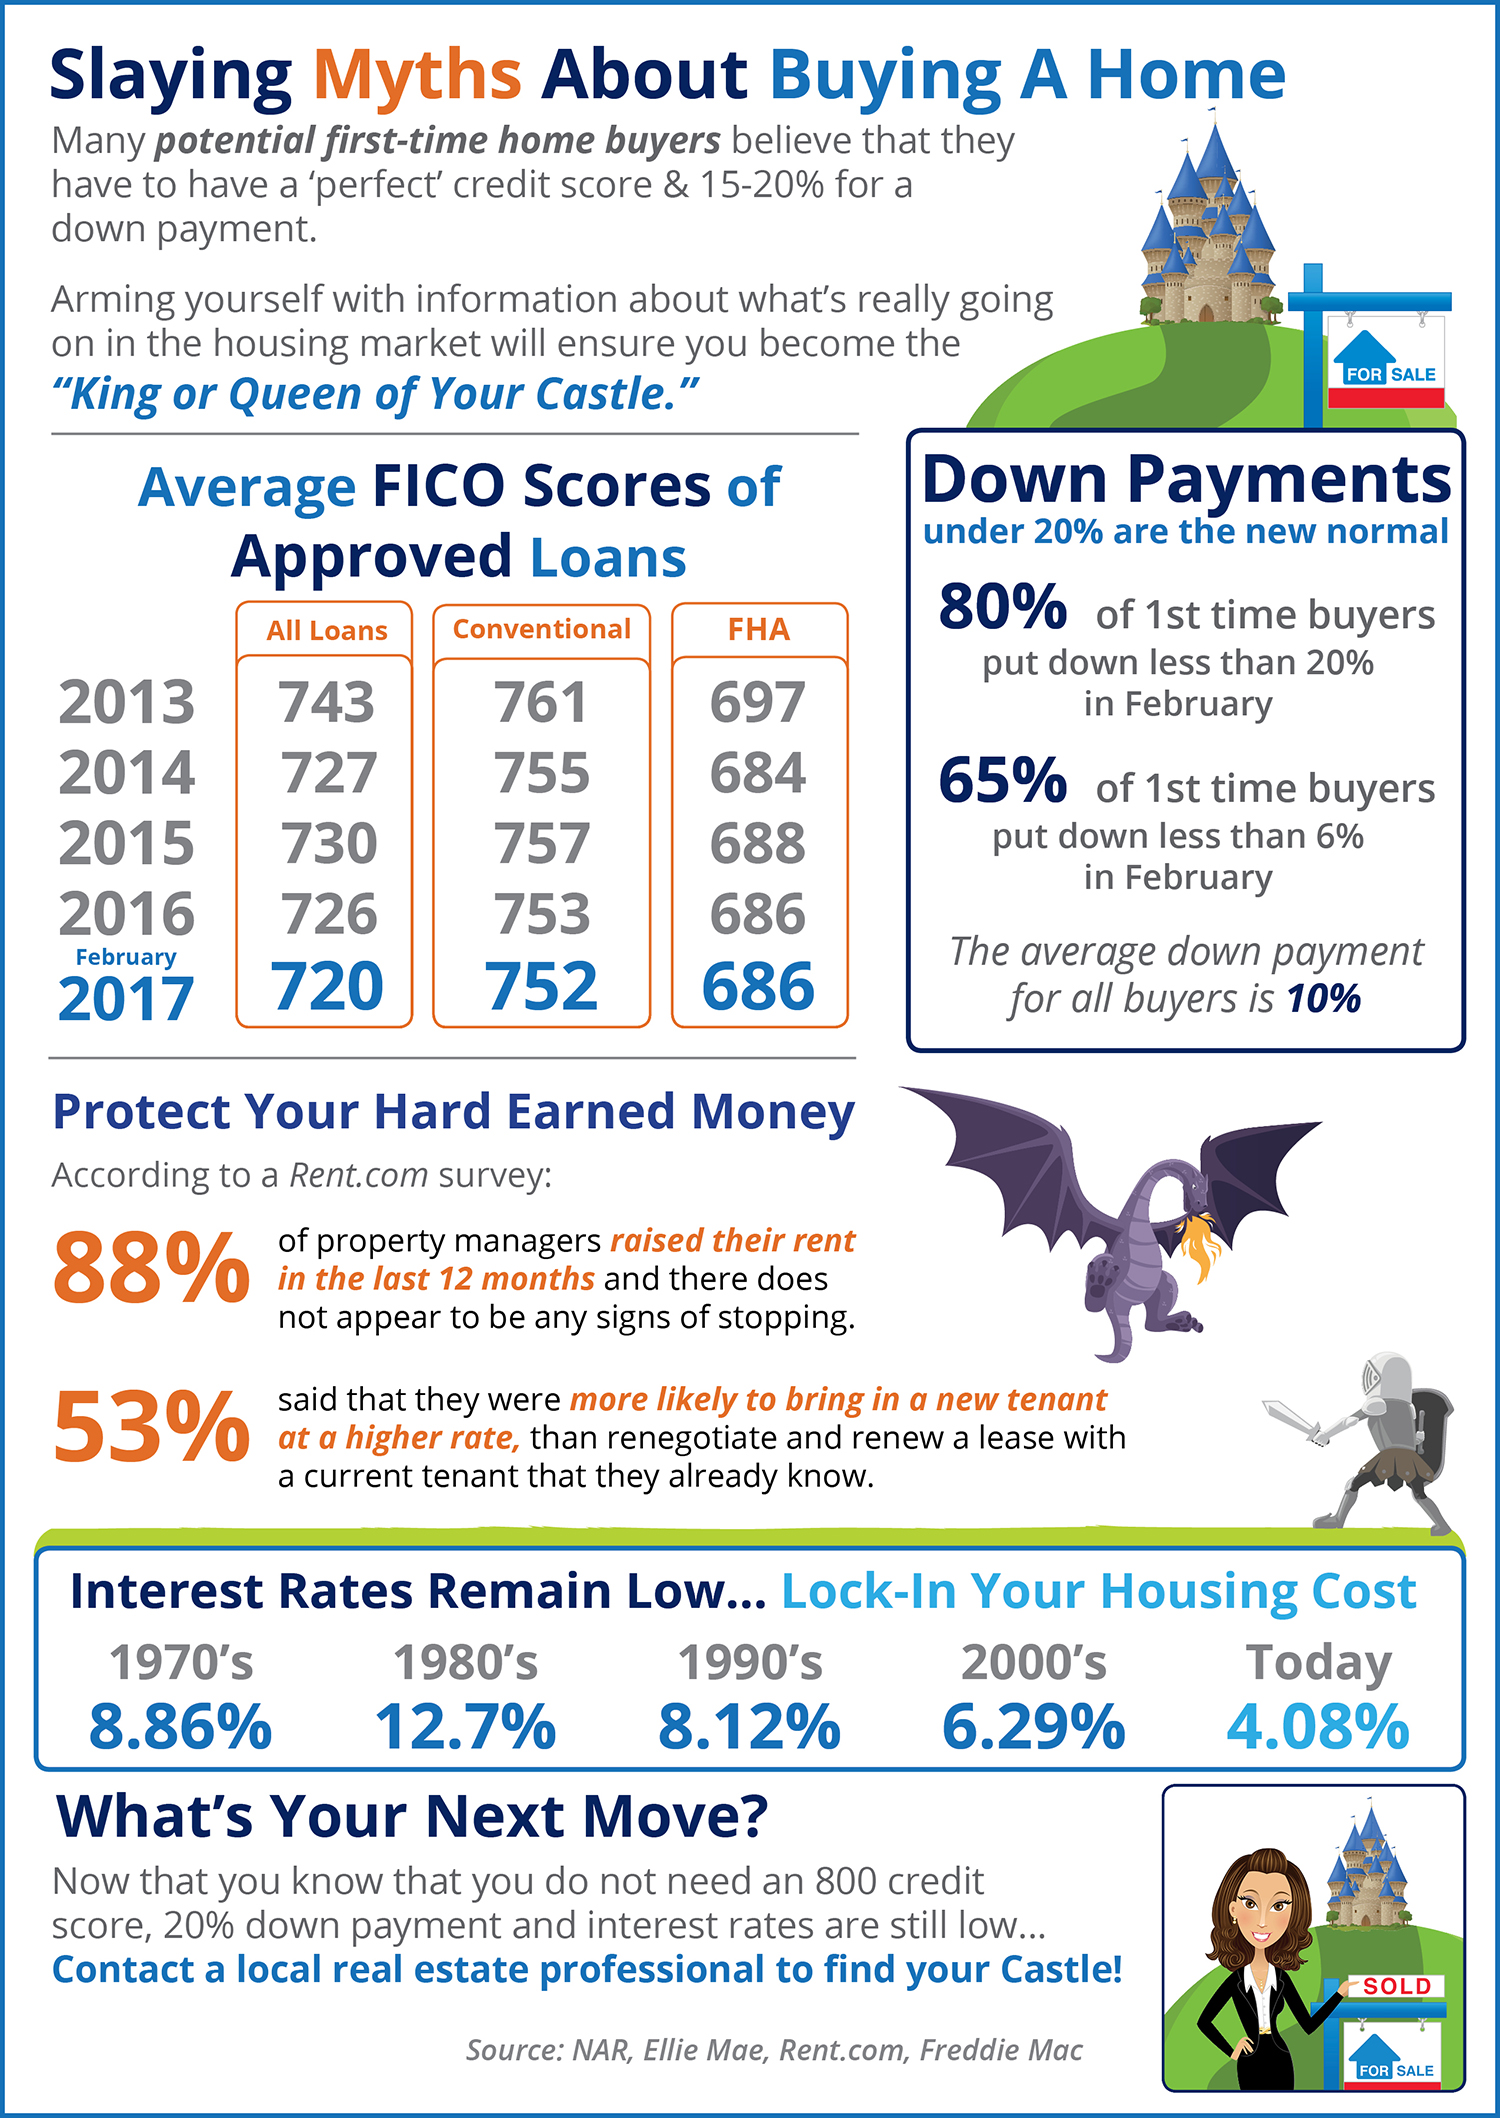 Slaying Home Buying Myths [INFOGRAPHIC] | Bridge Builders